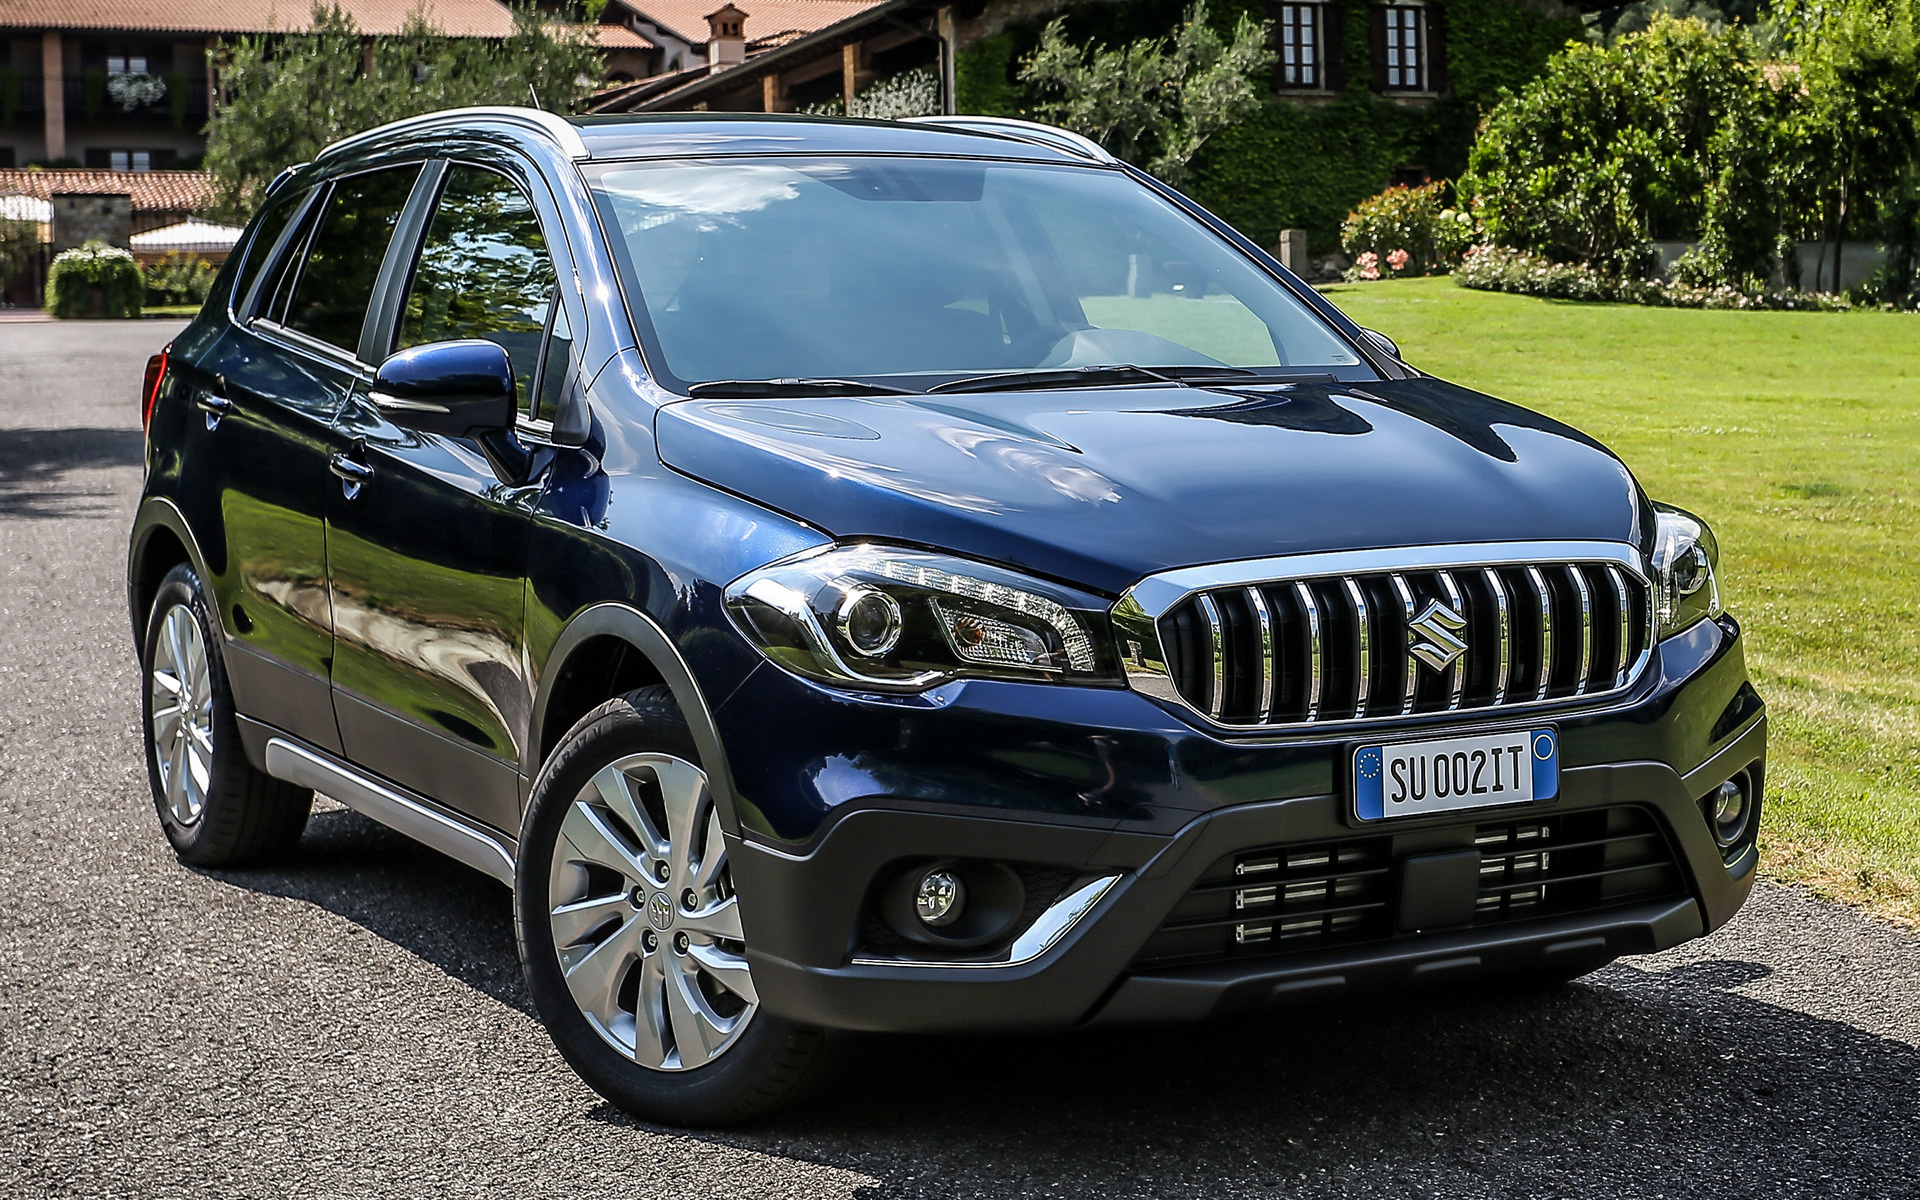 2016 Dodge Ram >> 2016 Suzuki SX4 S-Cross - Wallpapers and HD Images | Car Pixel